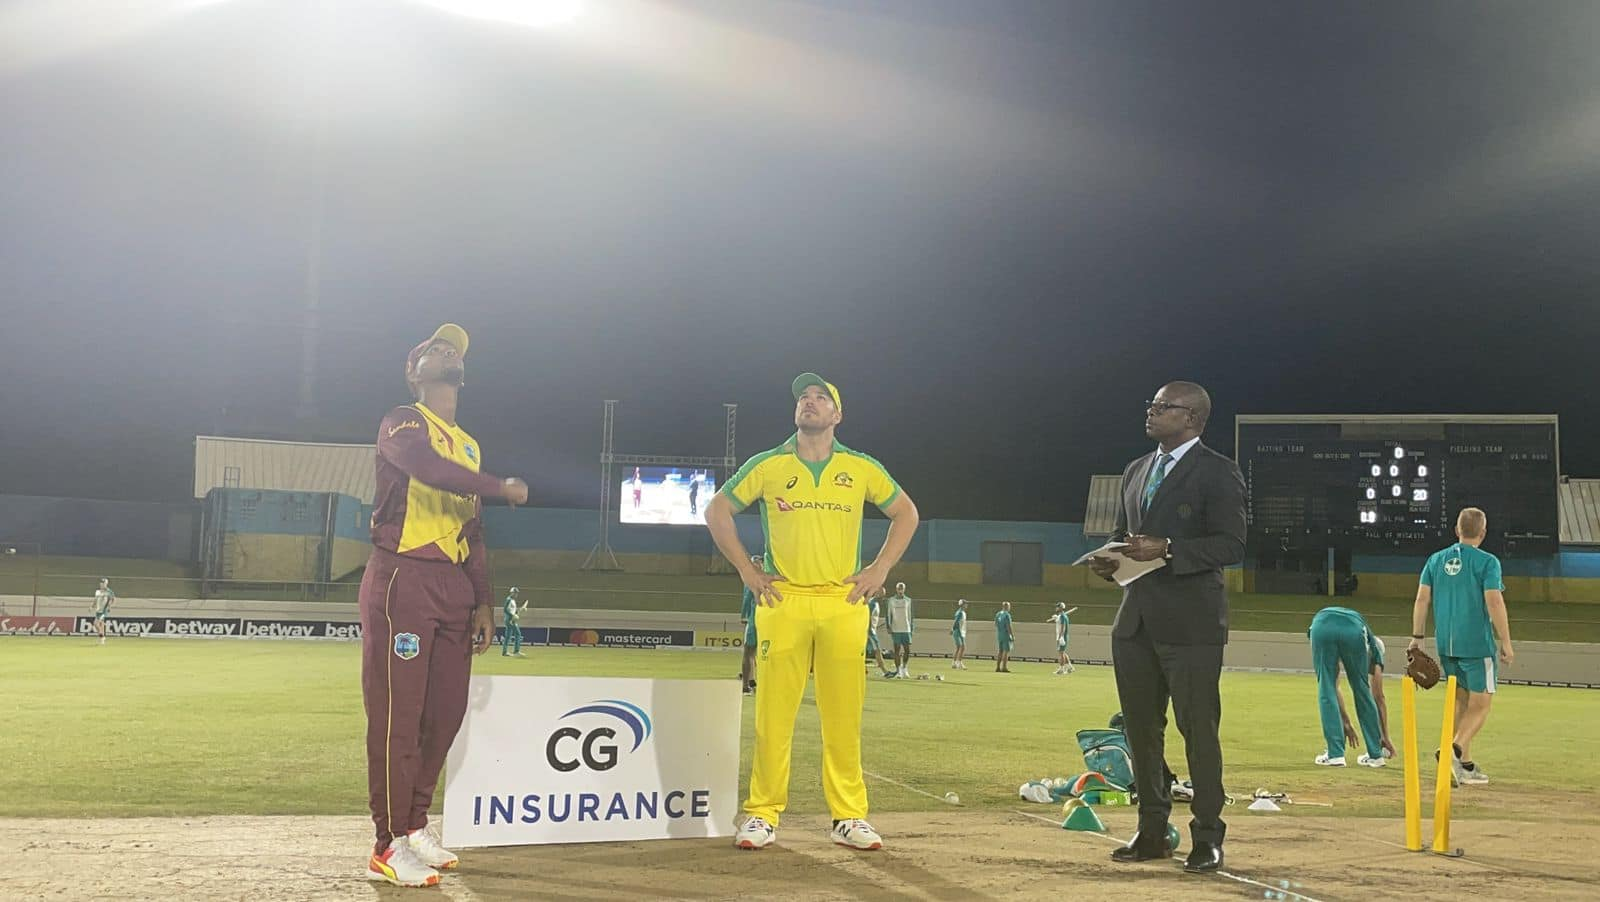 West Indies vs Australia Live Streaming Cricket, 4th T20I: When And Where to Watch